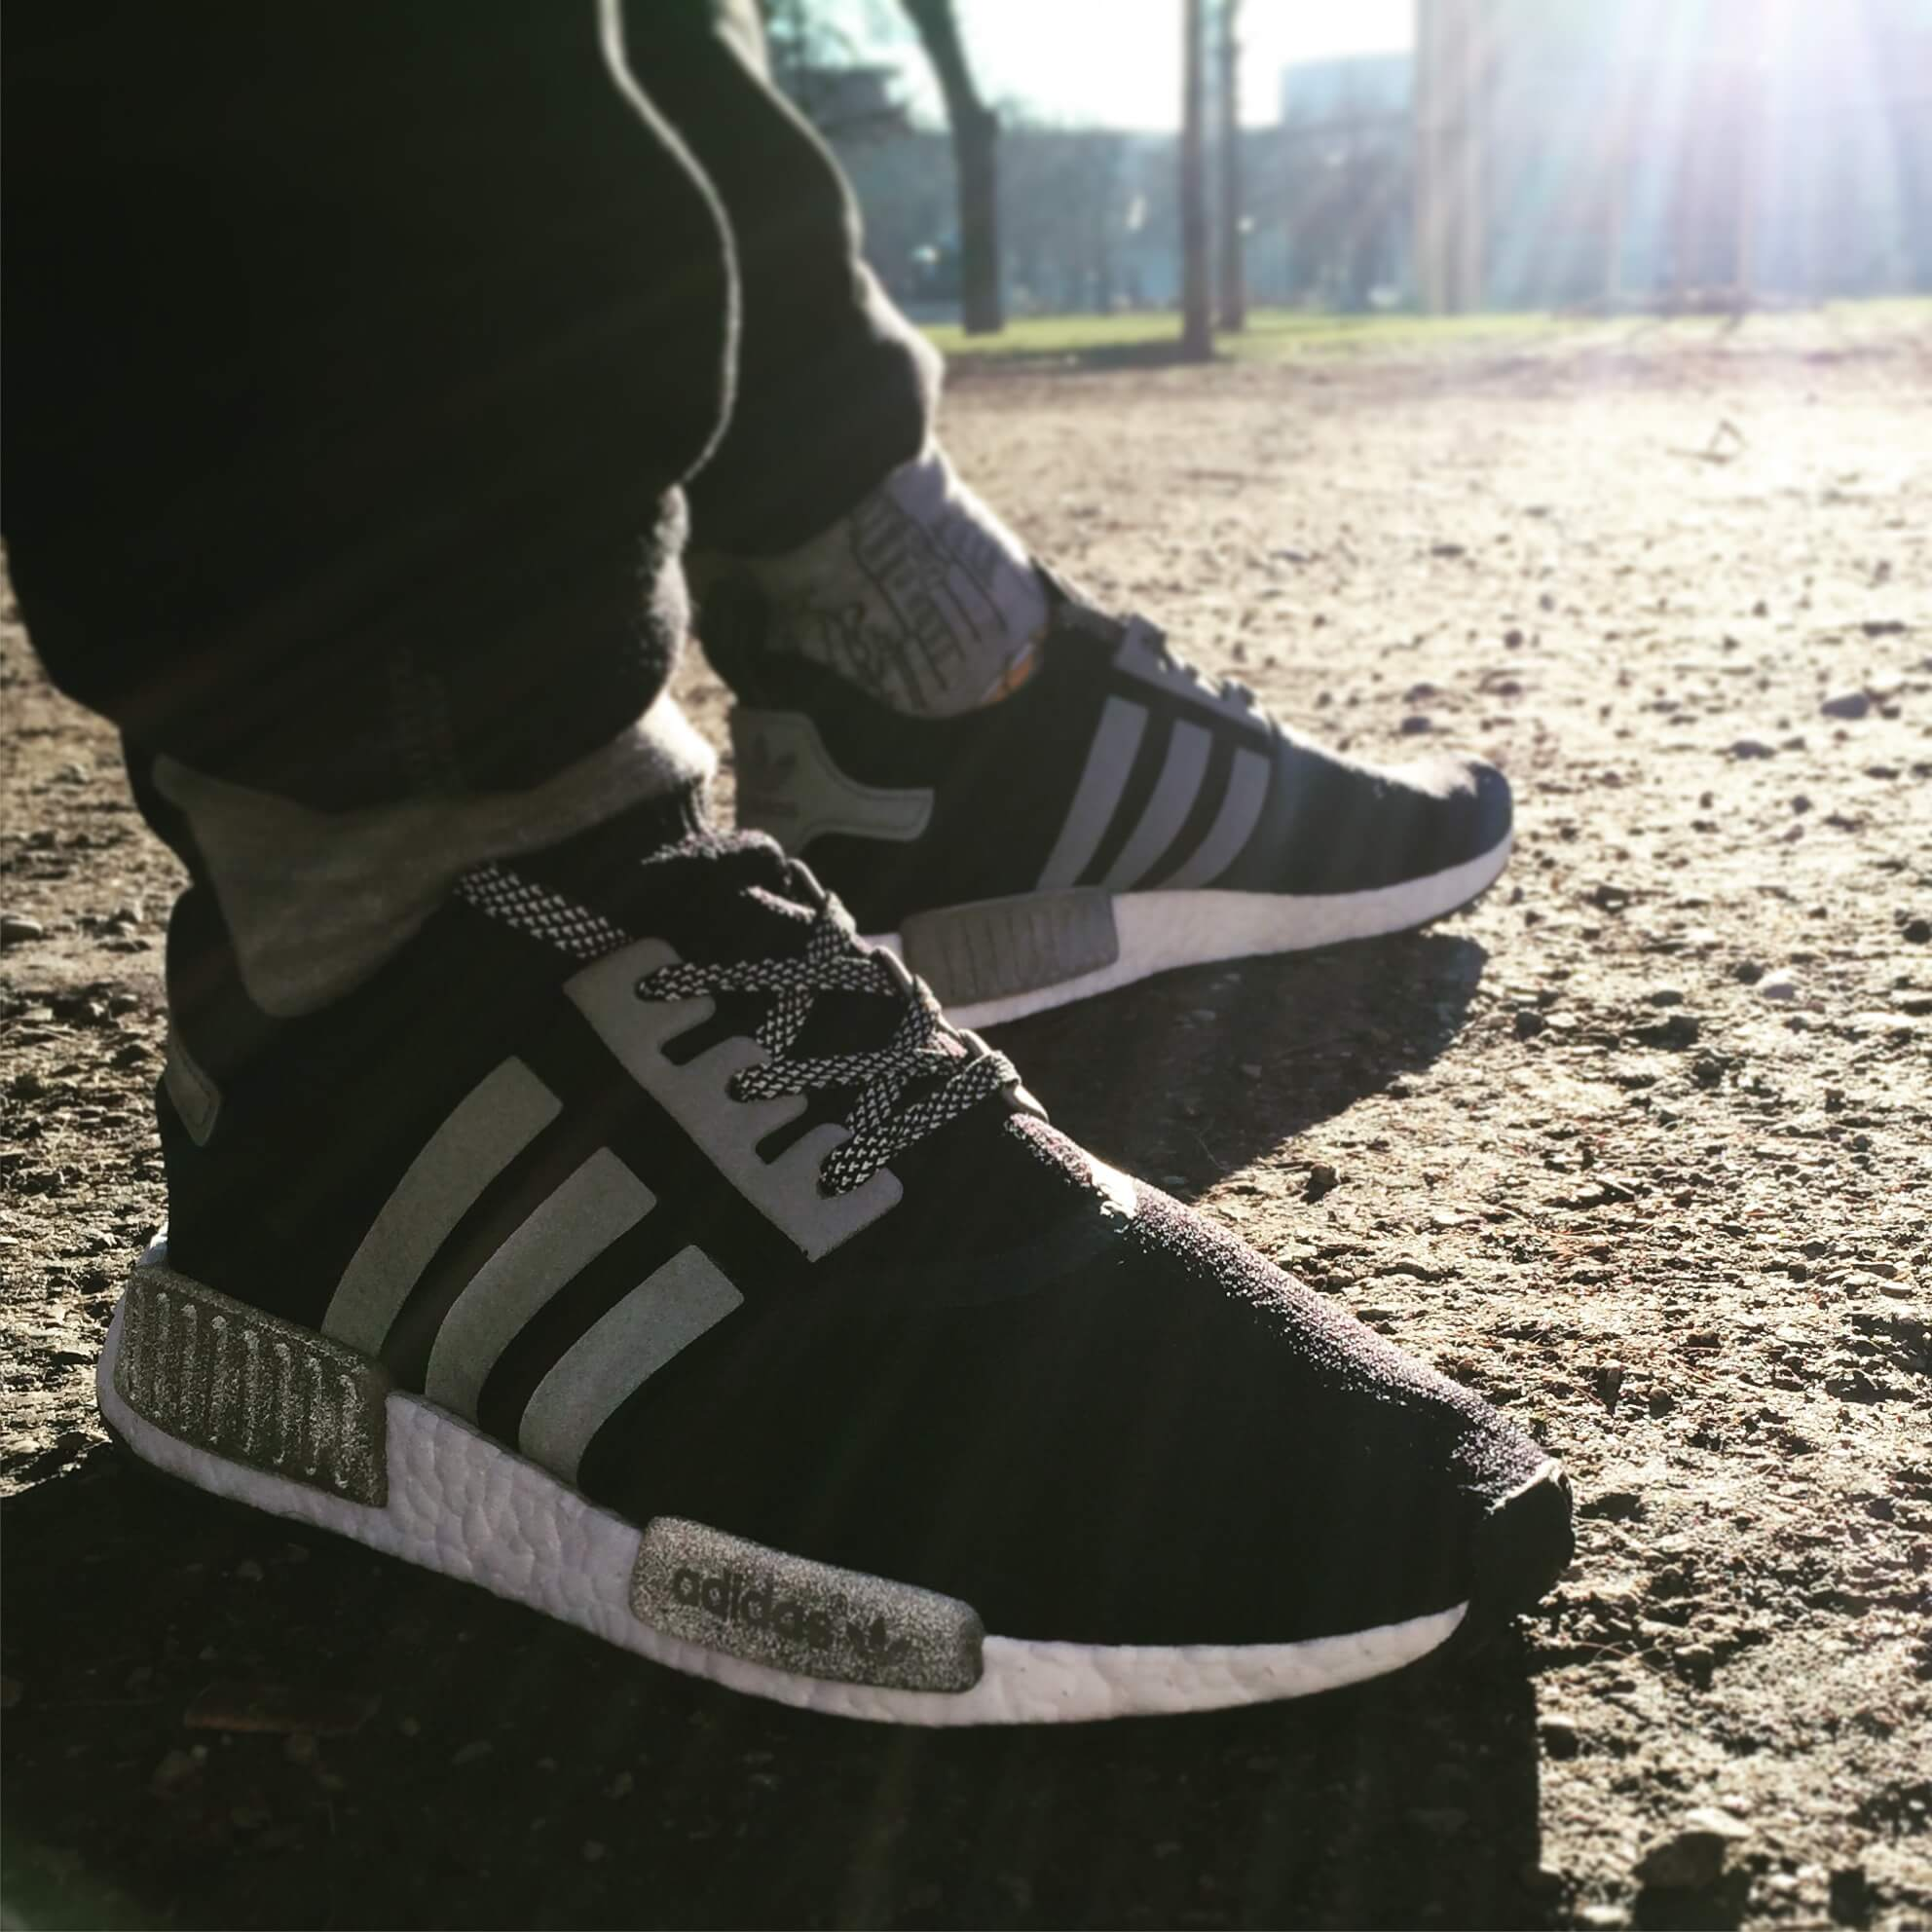 Adidas-NMD-Key-City-Activation-Alt-View-Grey-Socks